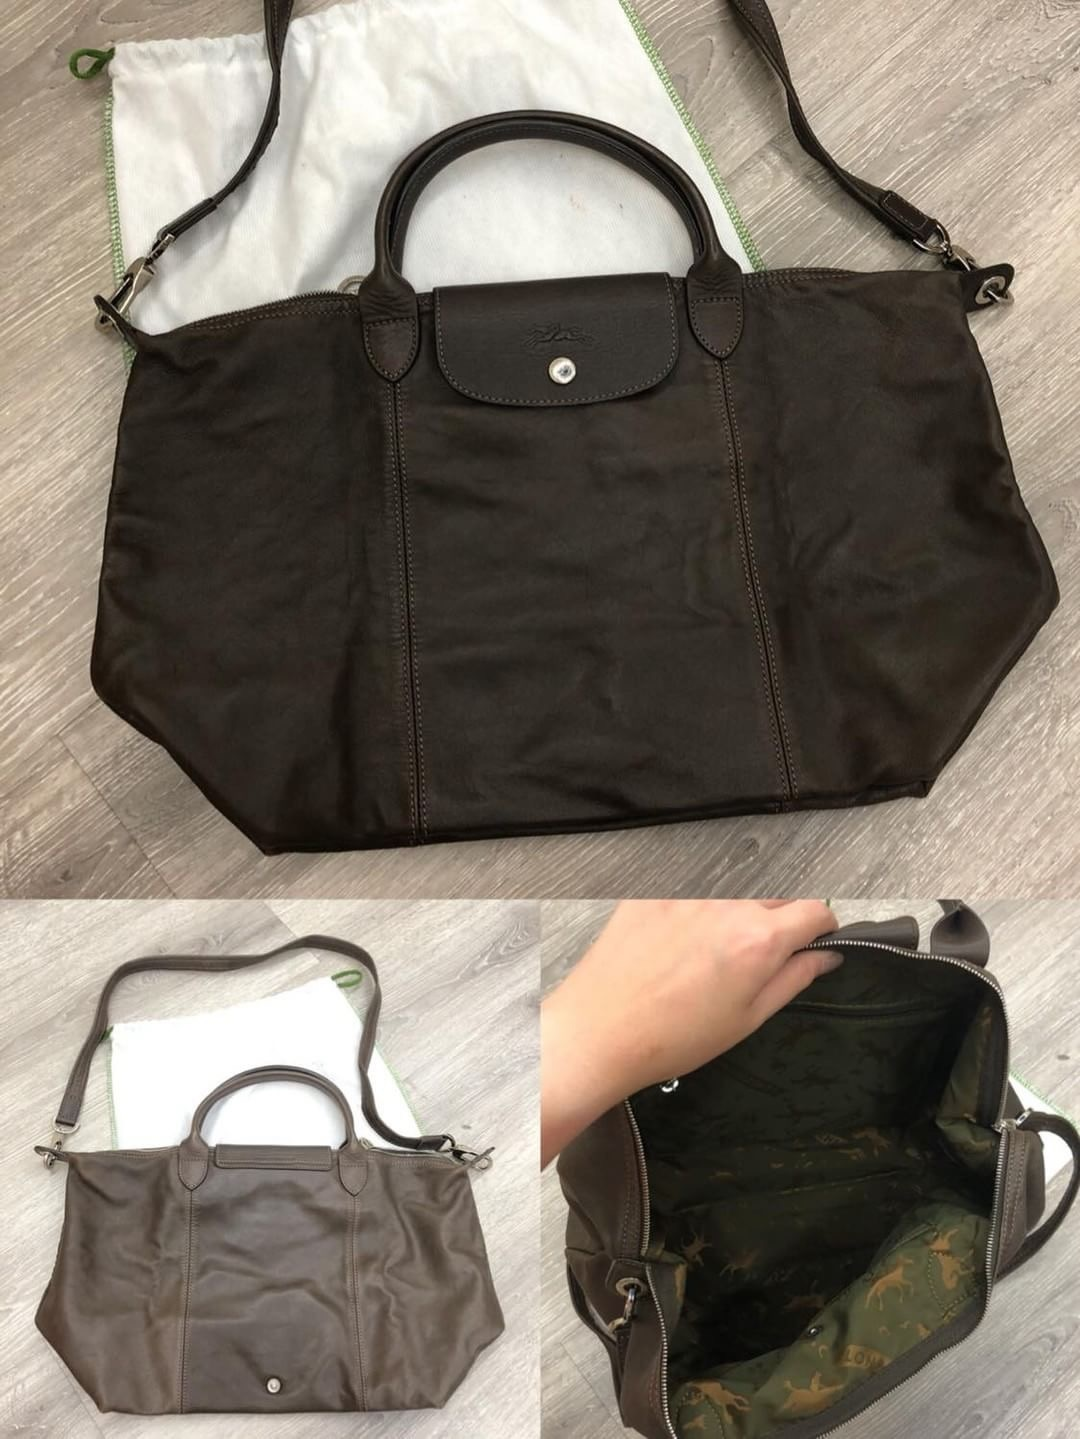 Long Champ leather sling bag Measurements   L 30cm - 50cm x H 30cm x W 30cm  Condition   8.5 10 Color Material   Dark Brown (can be used in both way)  Selling ... a1c6e3761ad1b